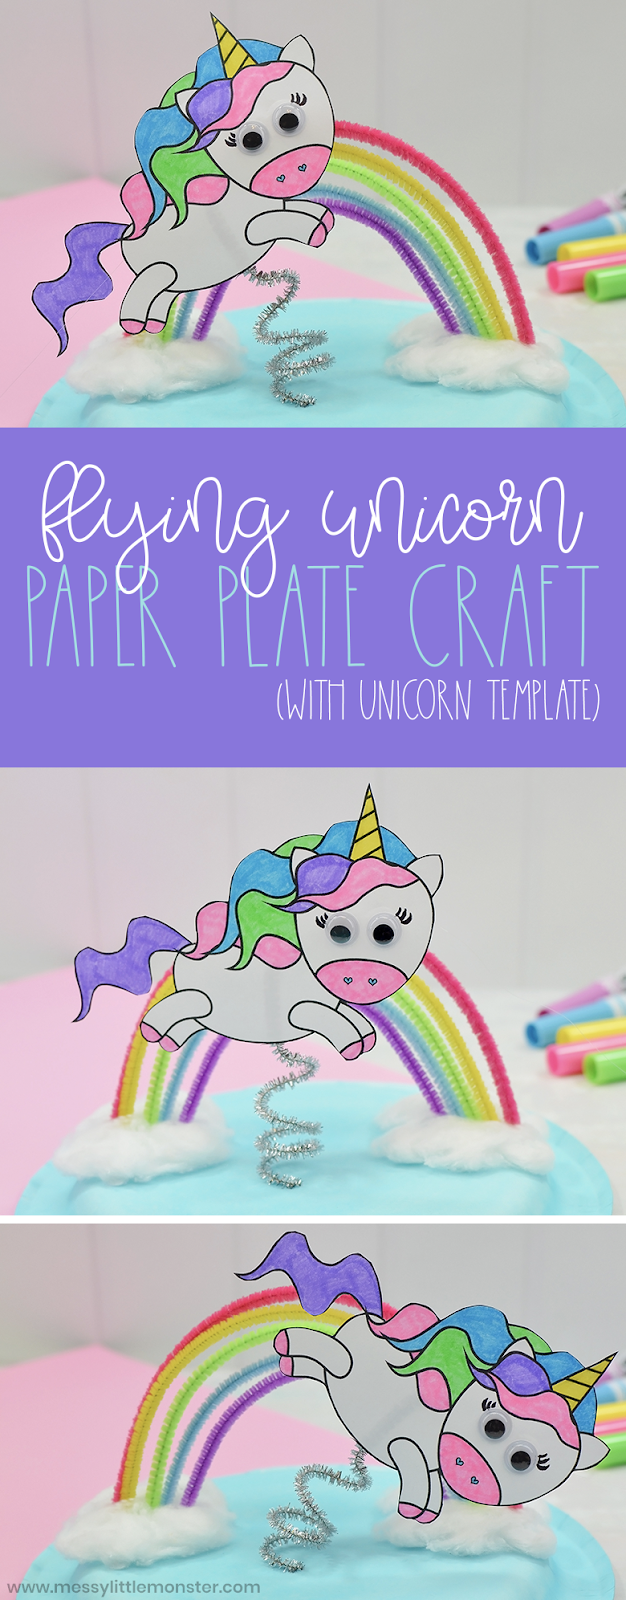 Flying Unicorn Paper Plate Craft  unicorn template included! is part of Unicorn paper plates, Paper plate crafts, Unicorn printables, Unicorn crafts, Plate crafts, Paper plate crafts for kids - Calling all little unicorn fans    you NEED this unicorn craft in your life! Unicorn fans will go NUTS over this super fun unicorn paper plate craft  And to make it even easier for you, we've included a free printable unicorn template  Just scroll down below to make your own paper plate unicorn craft!